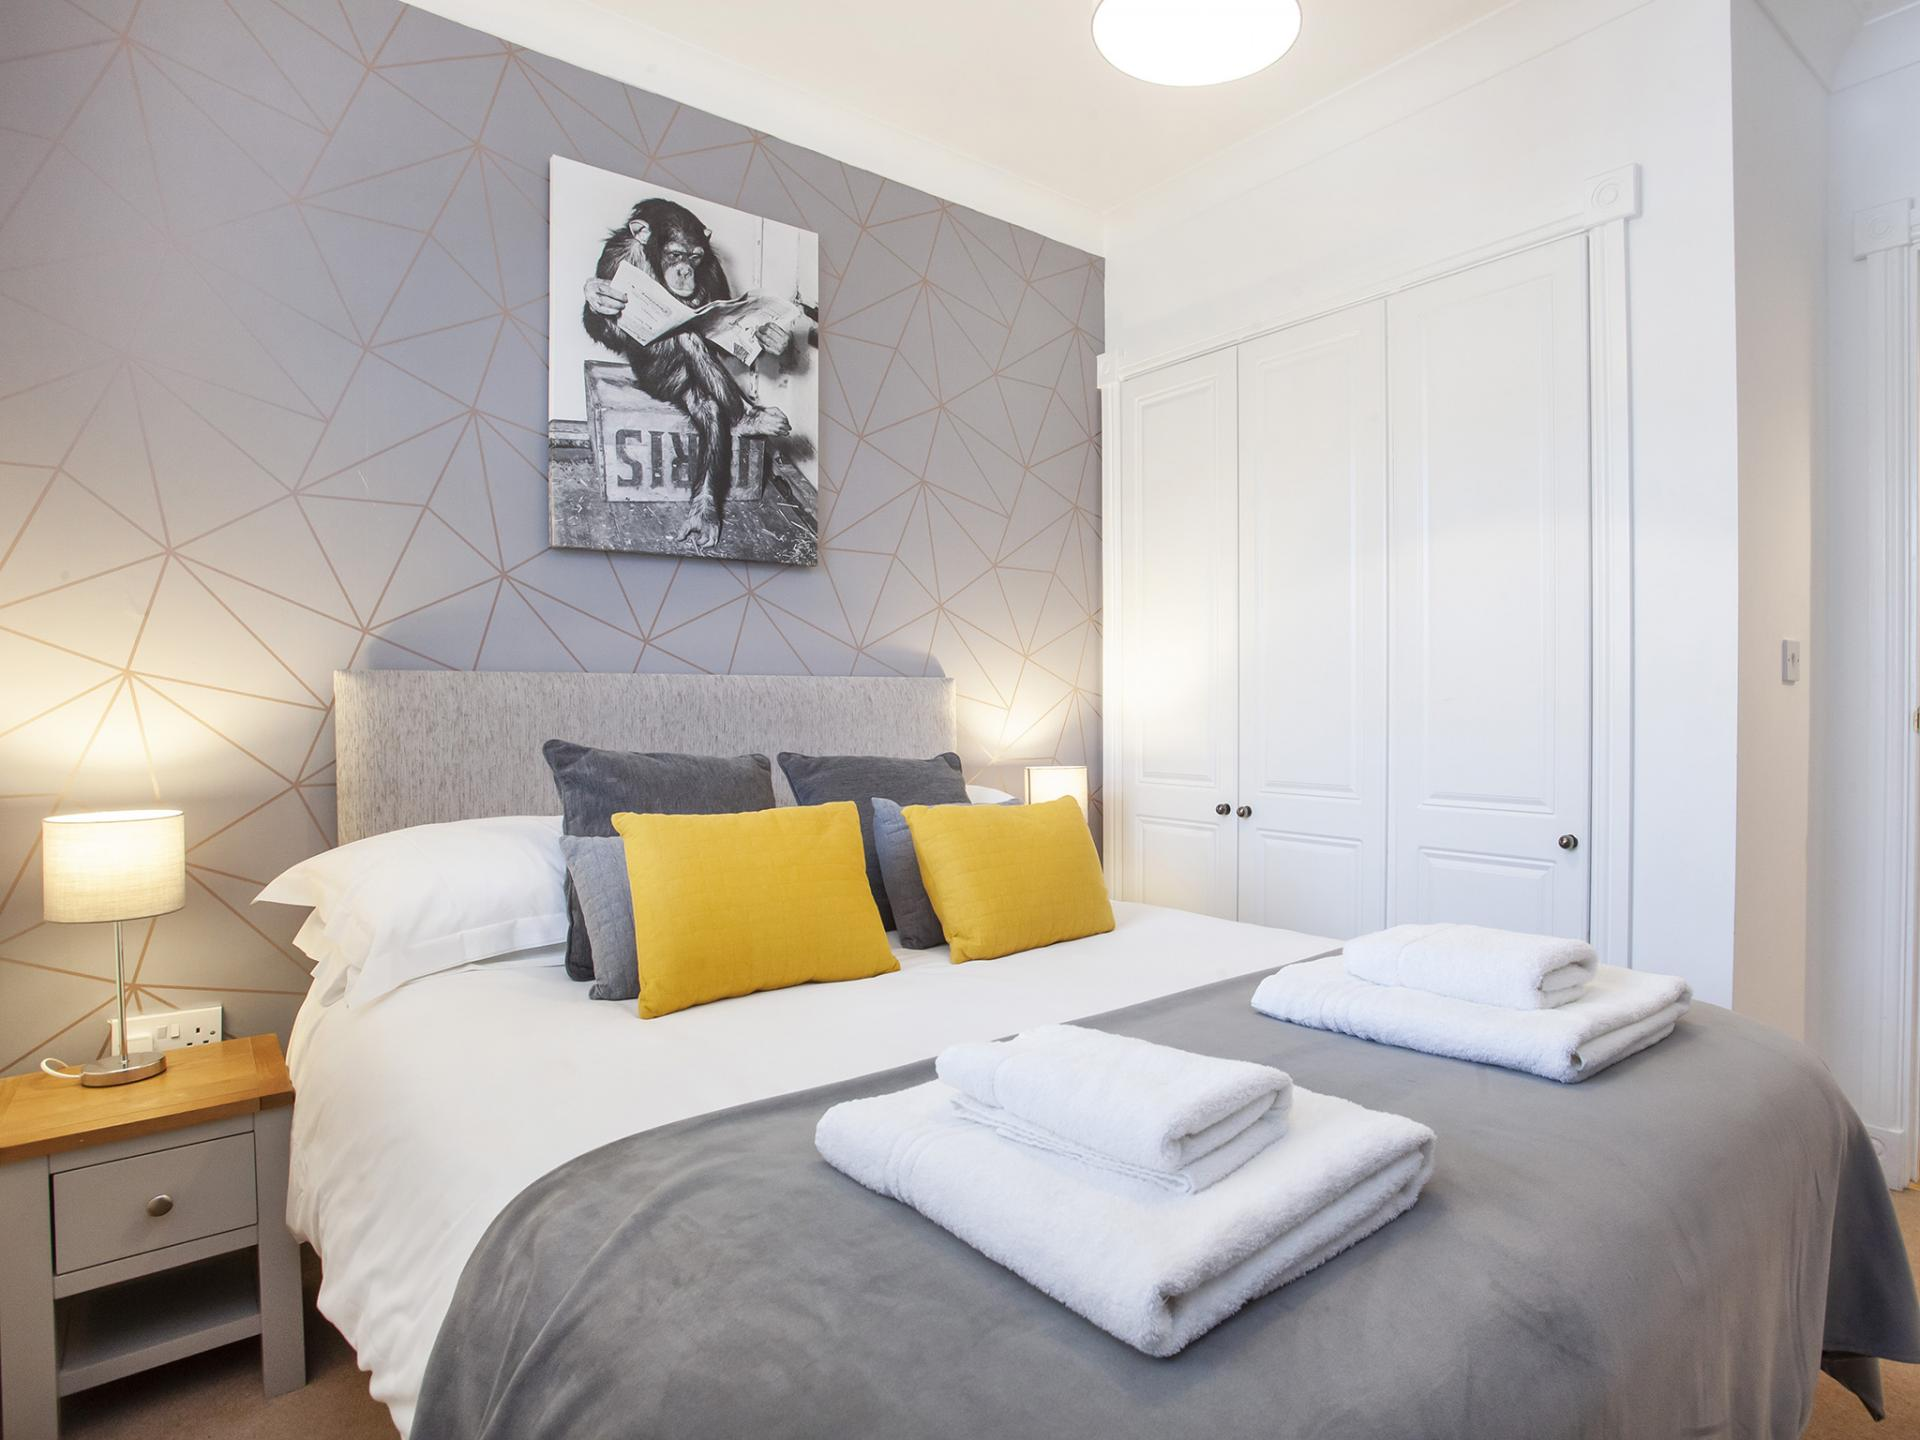 Relaxing Bedroom at The Station apartment, Centre, York - Citybase Apartments